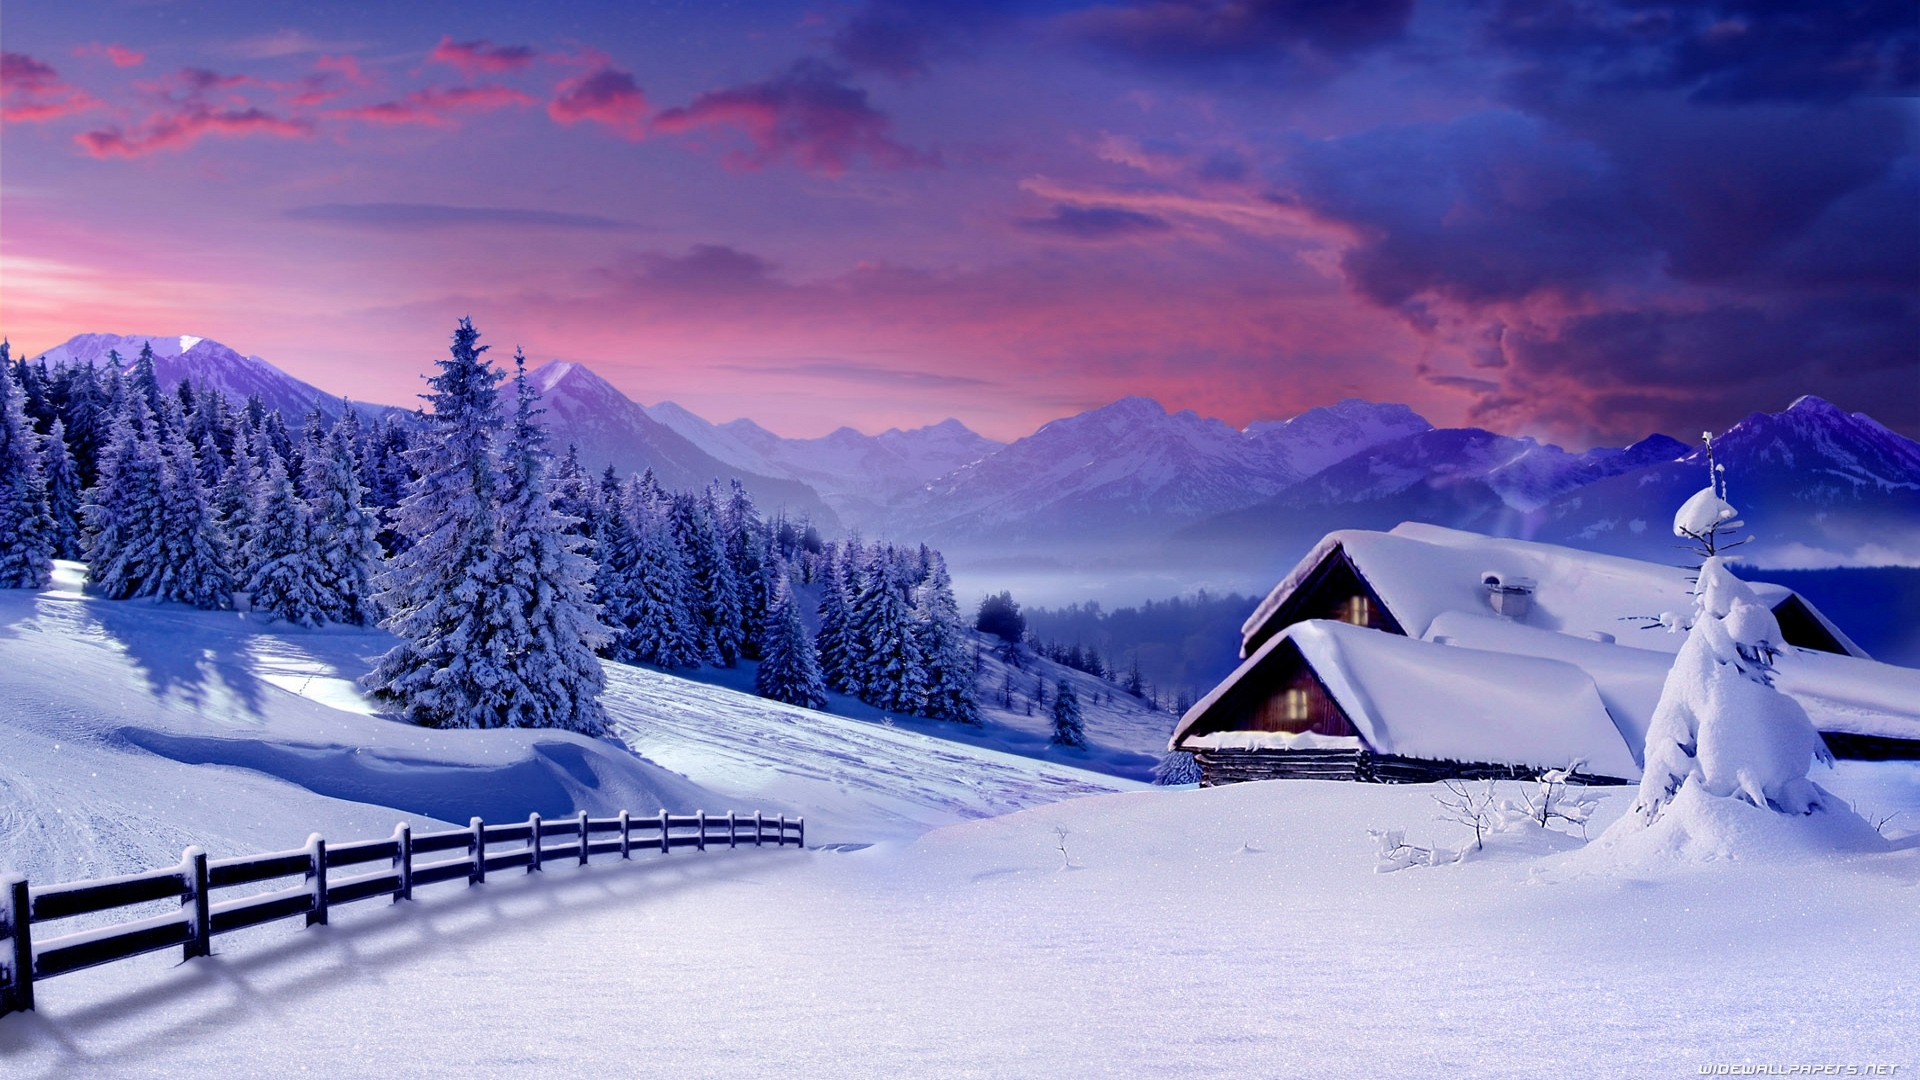 hu:59 - snow wallpapers, snow hd pics - 40 free large images